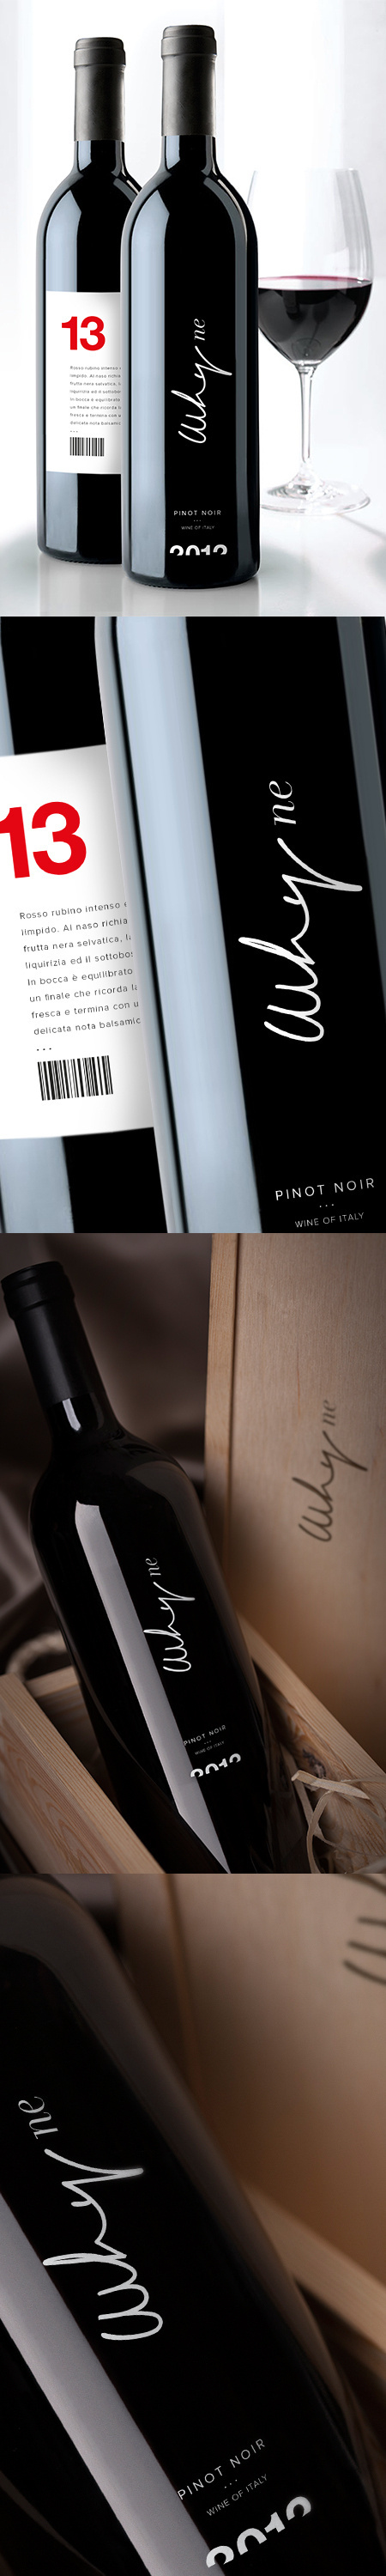 WHYNE wine pinot noir. #packaging #label #wine #whyne #pinot #italy #wines